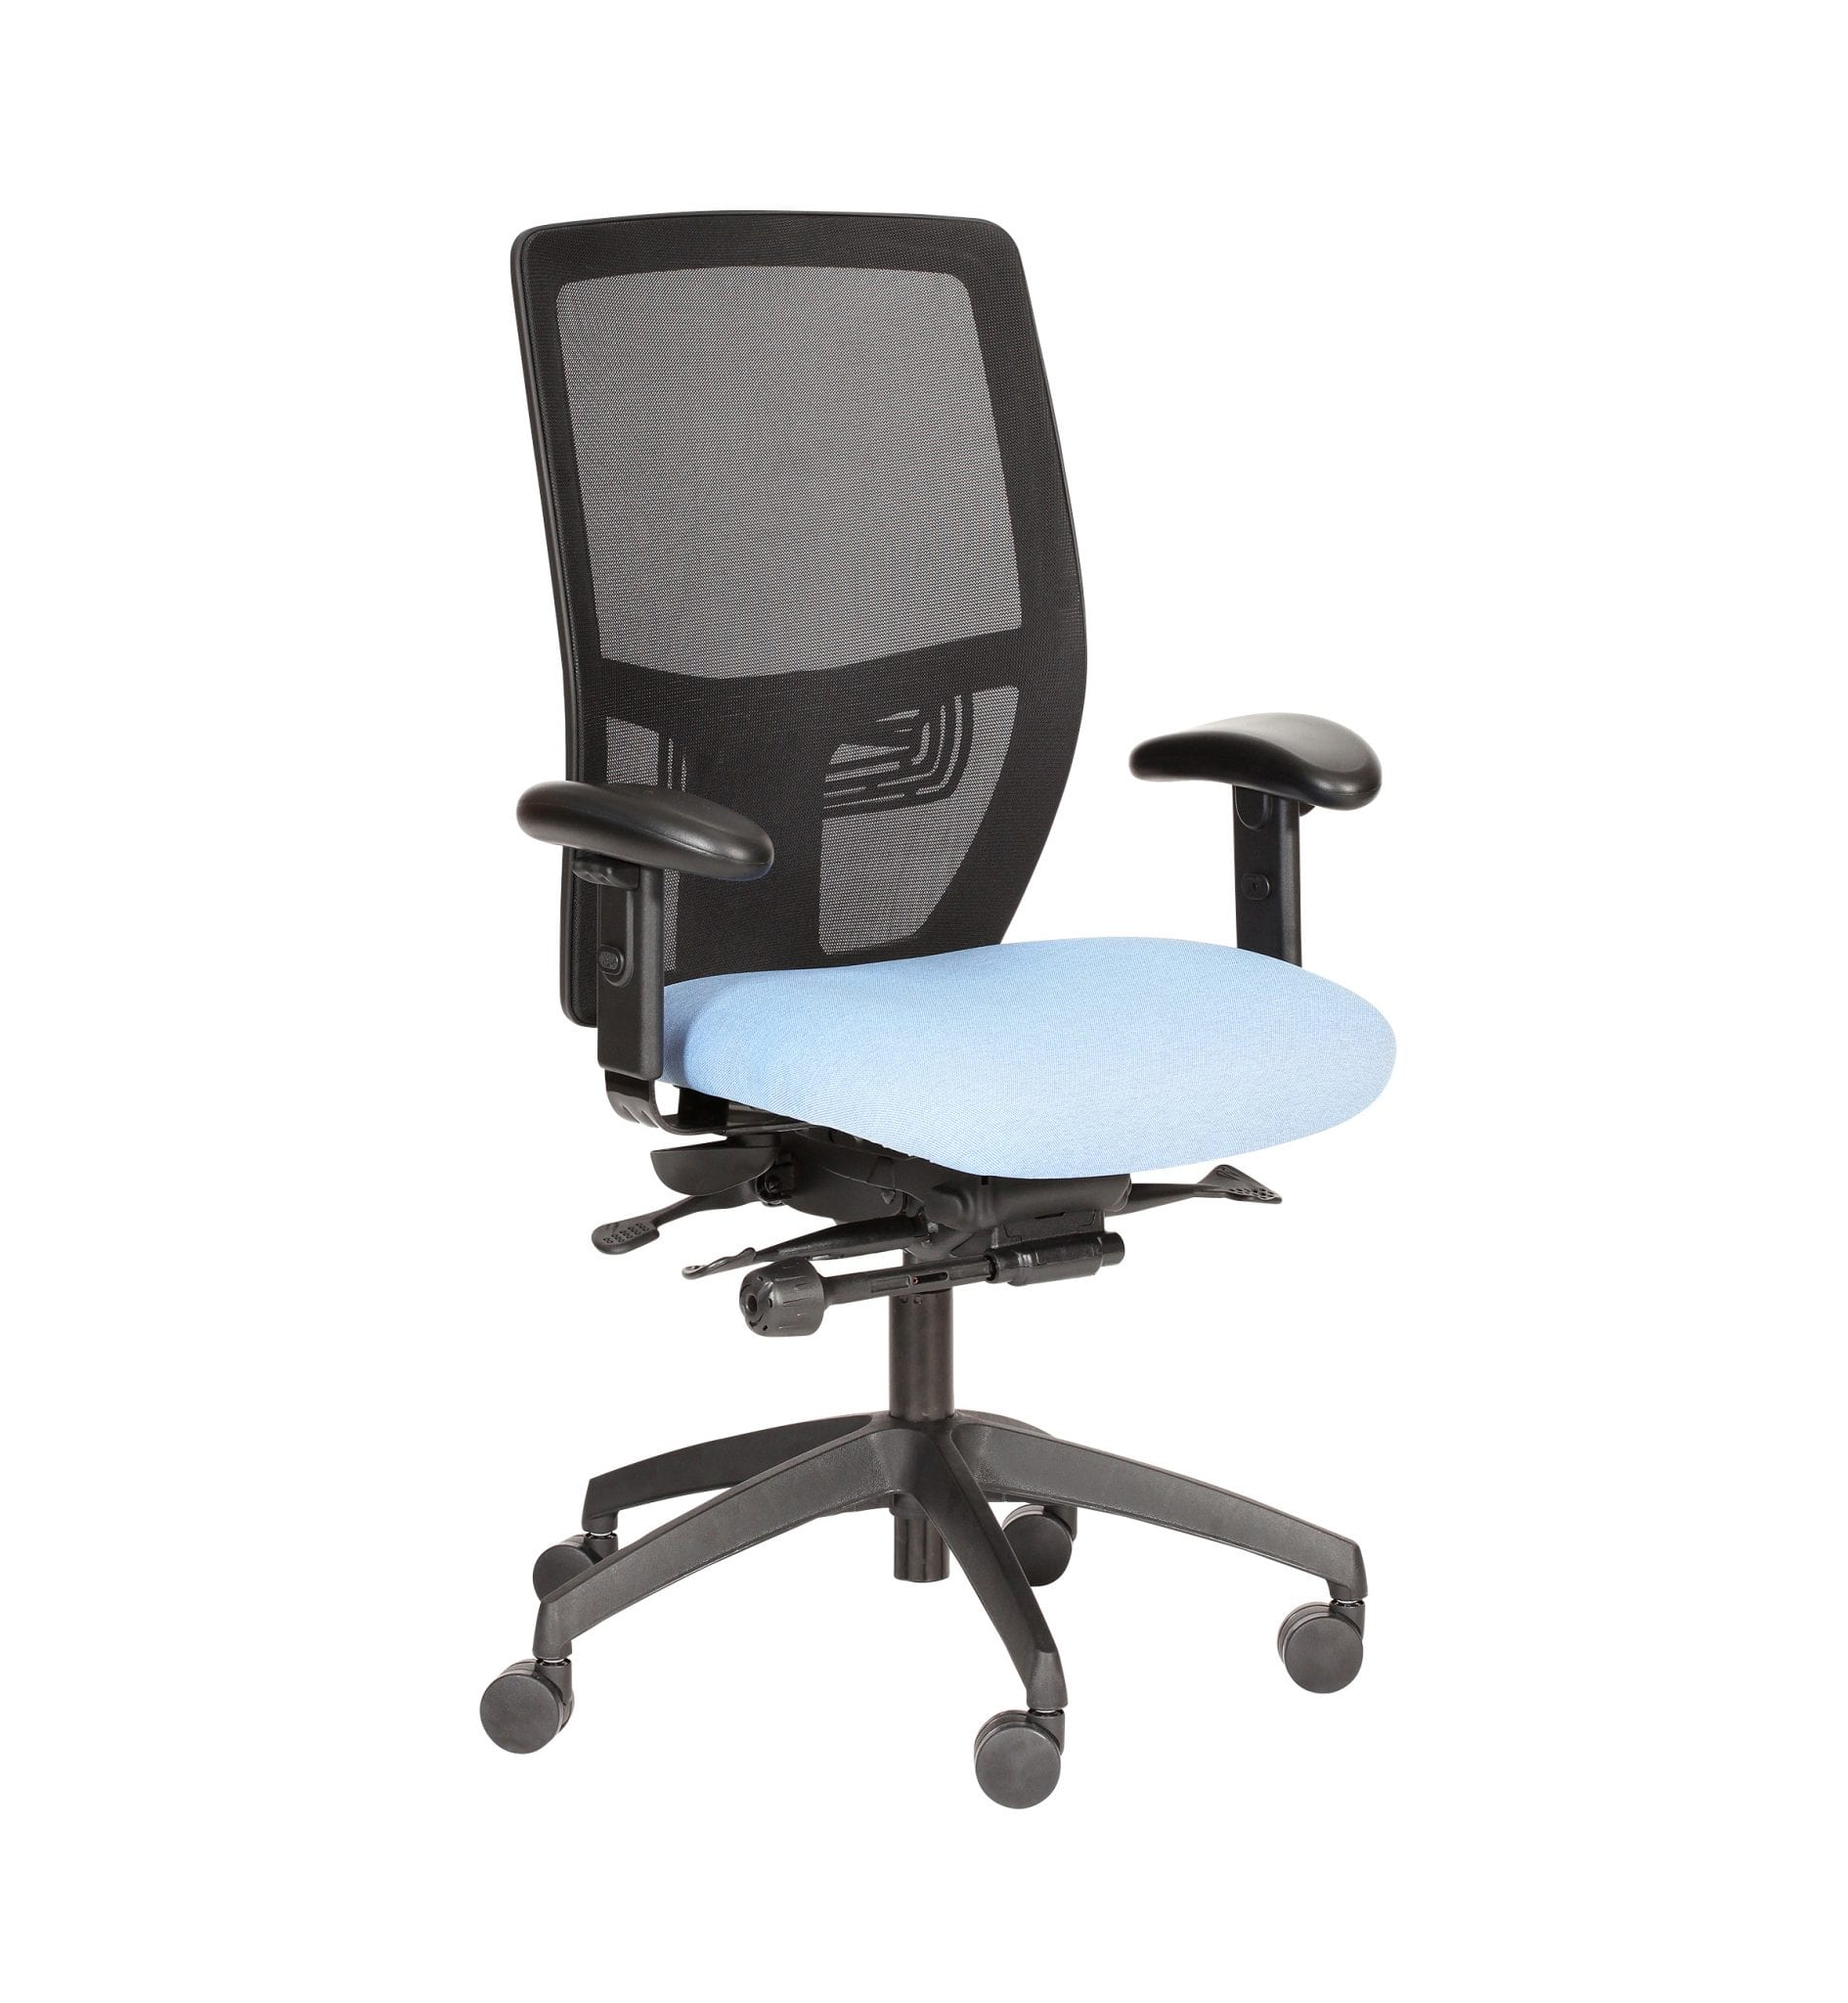 PMB73ADJ - Posturemax COOL - Office chair with adjustable arms for everyday use. Ideal for office and call centre use